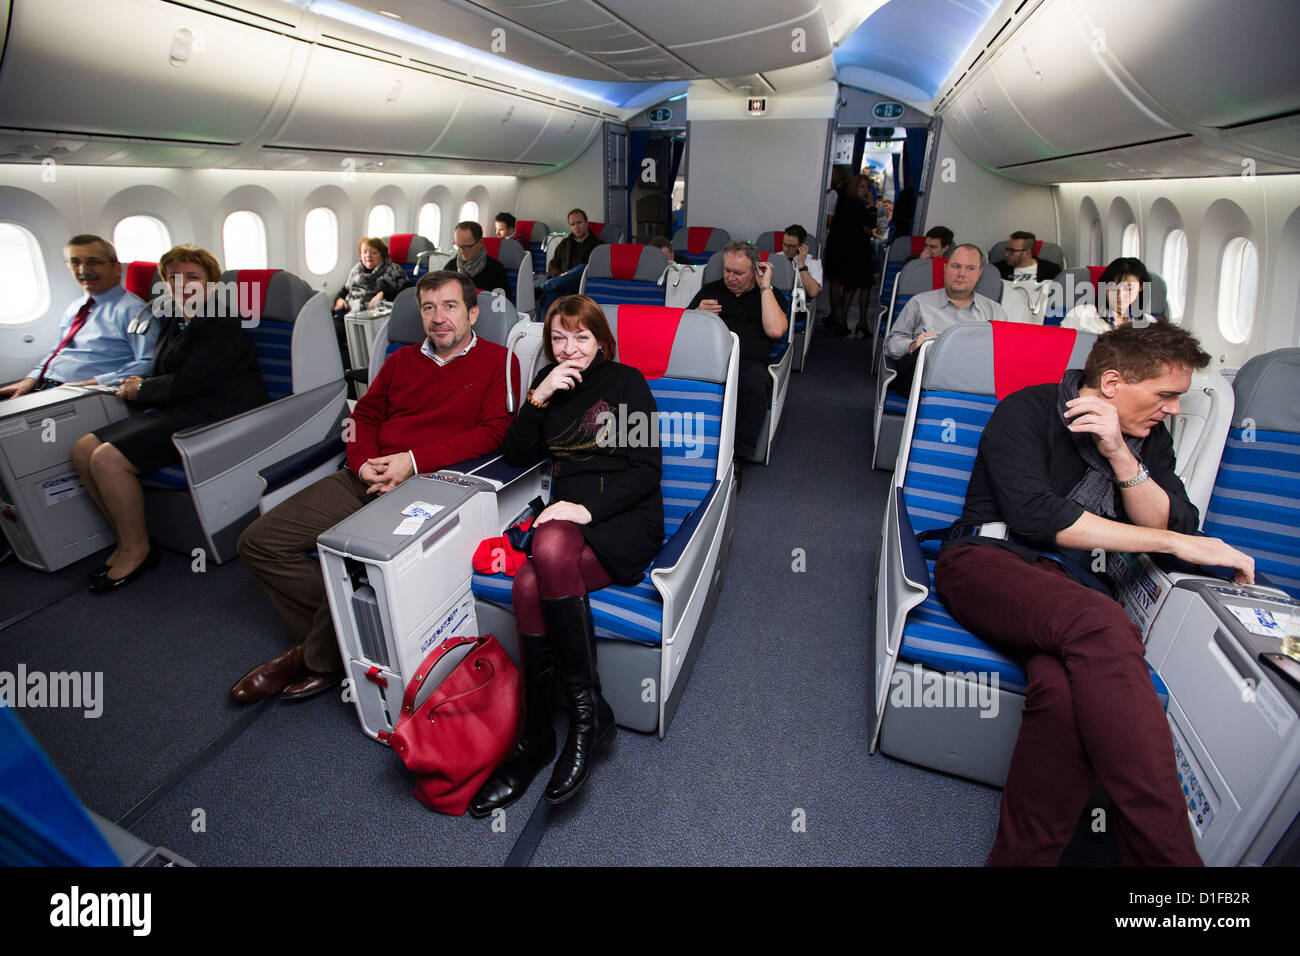 Interieur, Boeing 787 Dreamliner Stockfoto, Bild: 52583743 - Alamy